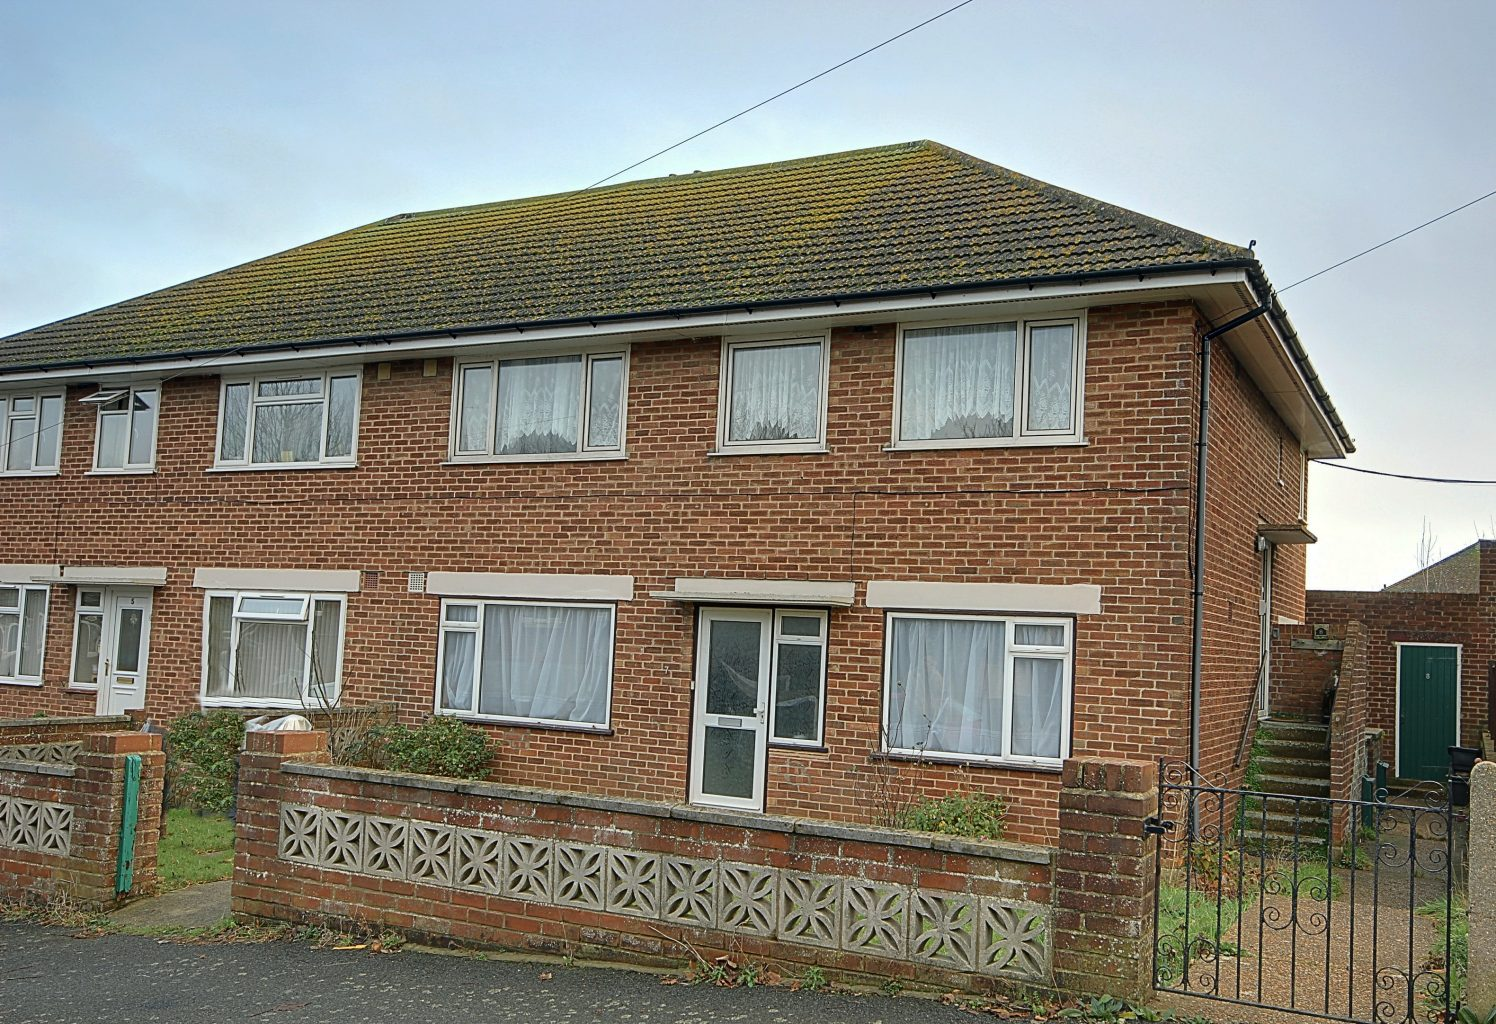 Image of flat in Newhaven| Open House Newhaven